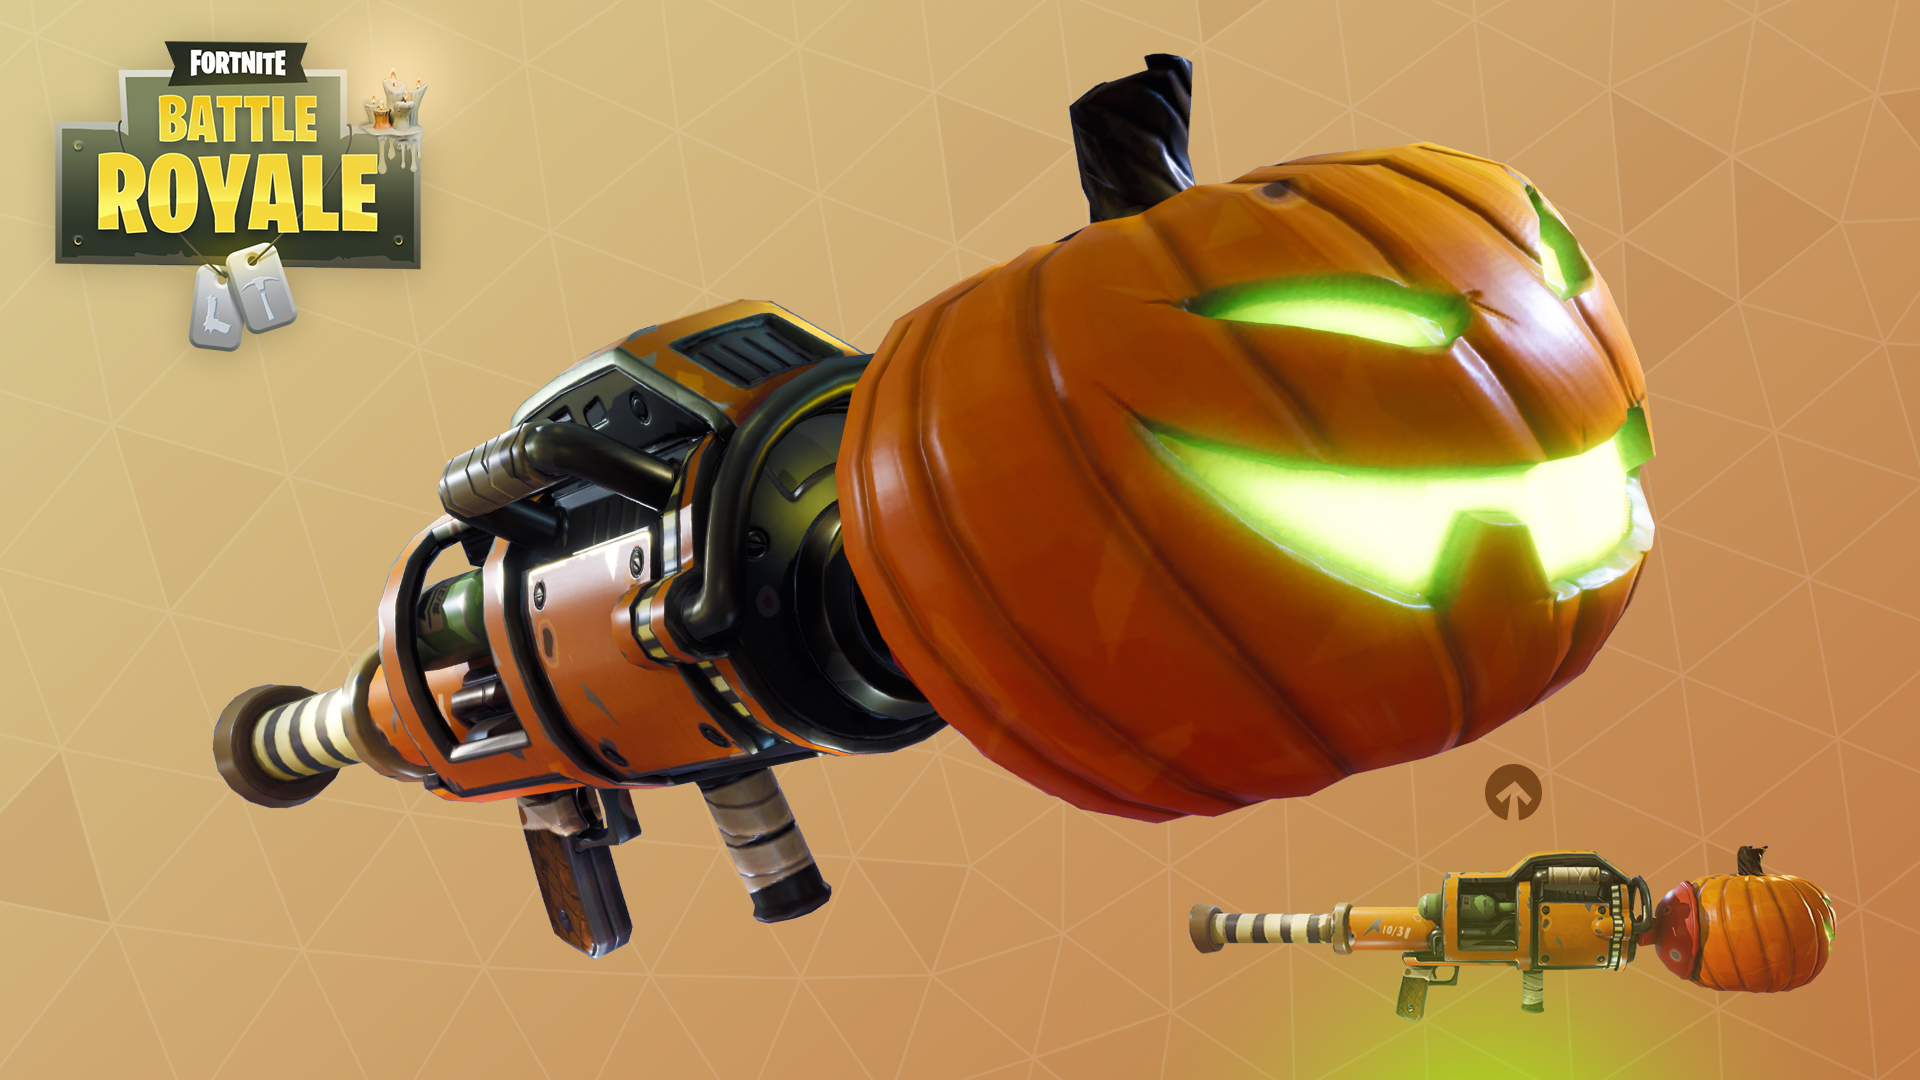 Fortnite%2Fblog%2Ffortnitemares-update-1-8-patch-notes%2FPVP_Pumpkin-Launcher_EN-1920x1080-9344ab9c882b9ed61611c44c4780f74252b859c9